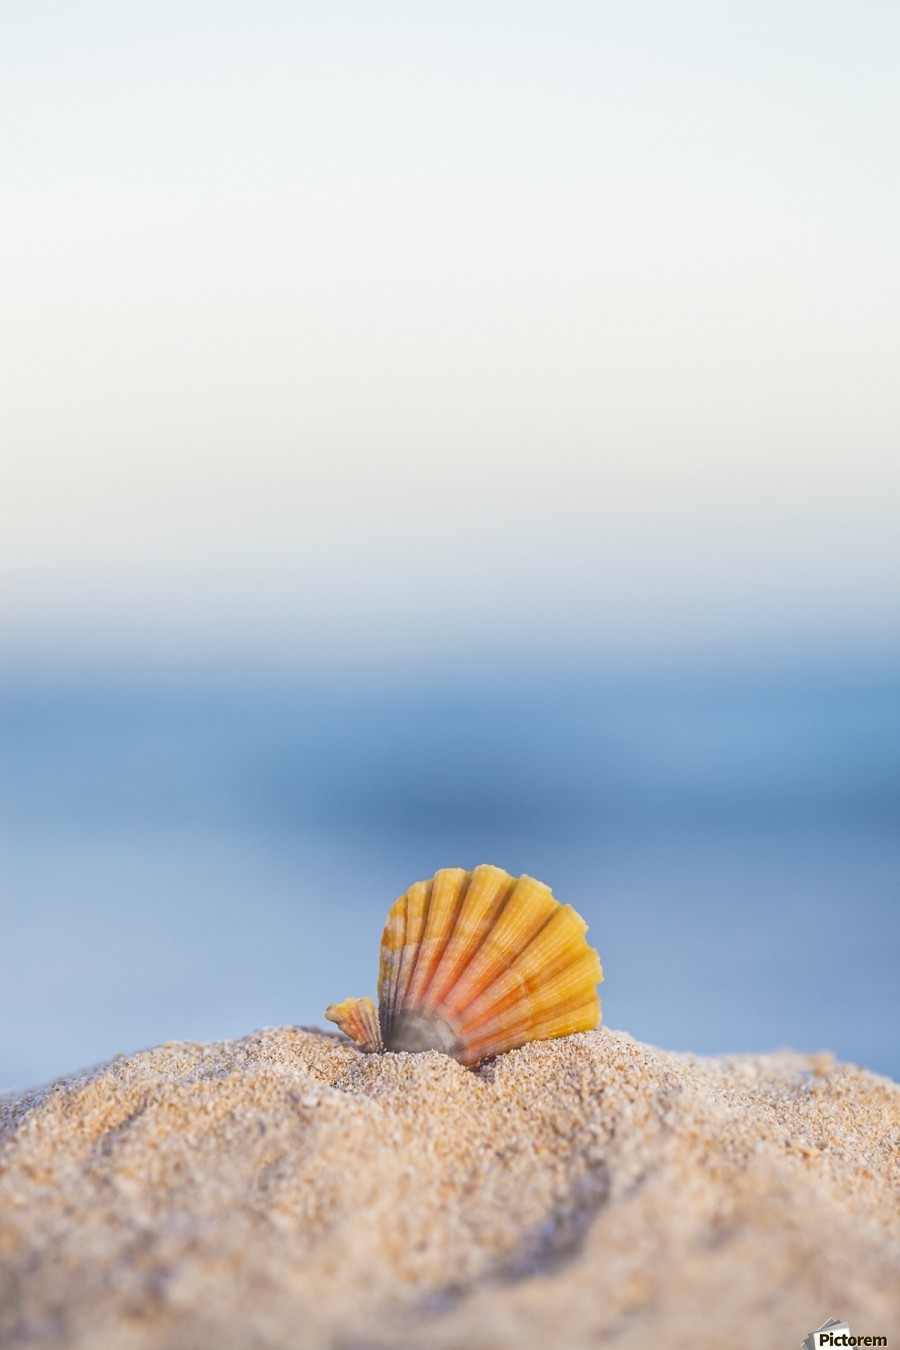 A rare rainbow color Hawaiian Sunrise Scallop Seashell, also known as Pecten Langfordi, in the sand at the beach at sunrise; Honolulu, Oahu Hawaii, United States of America  Print